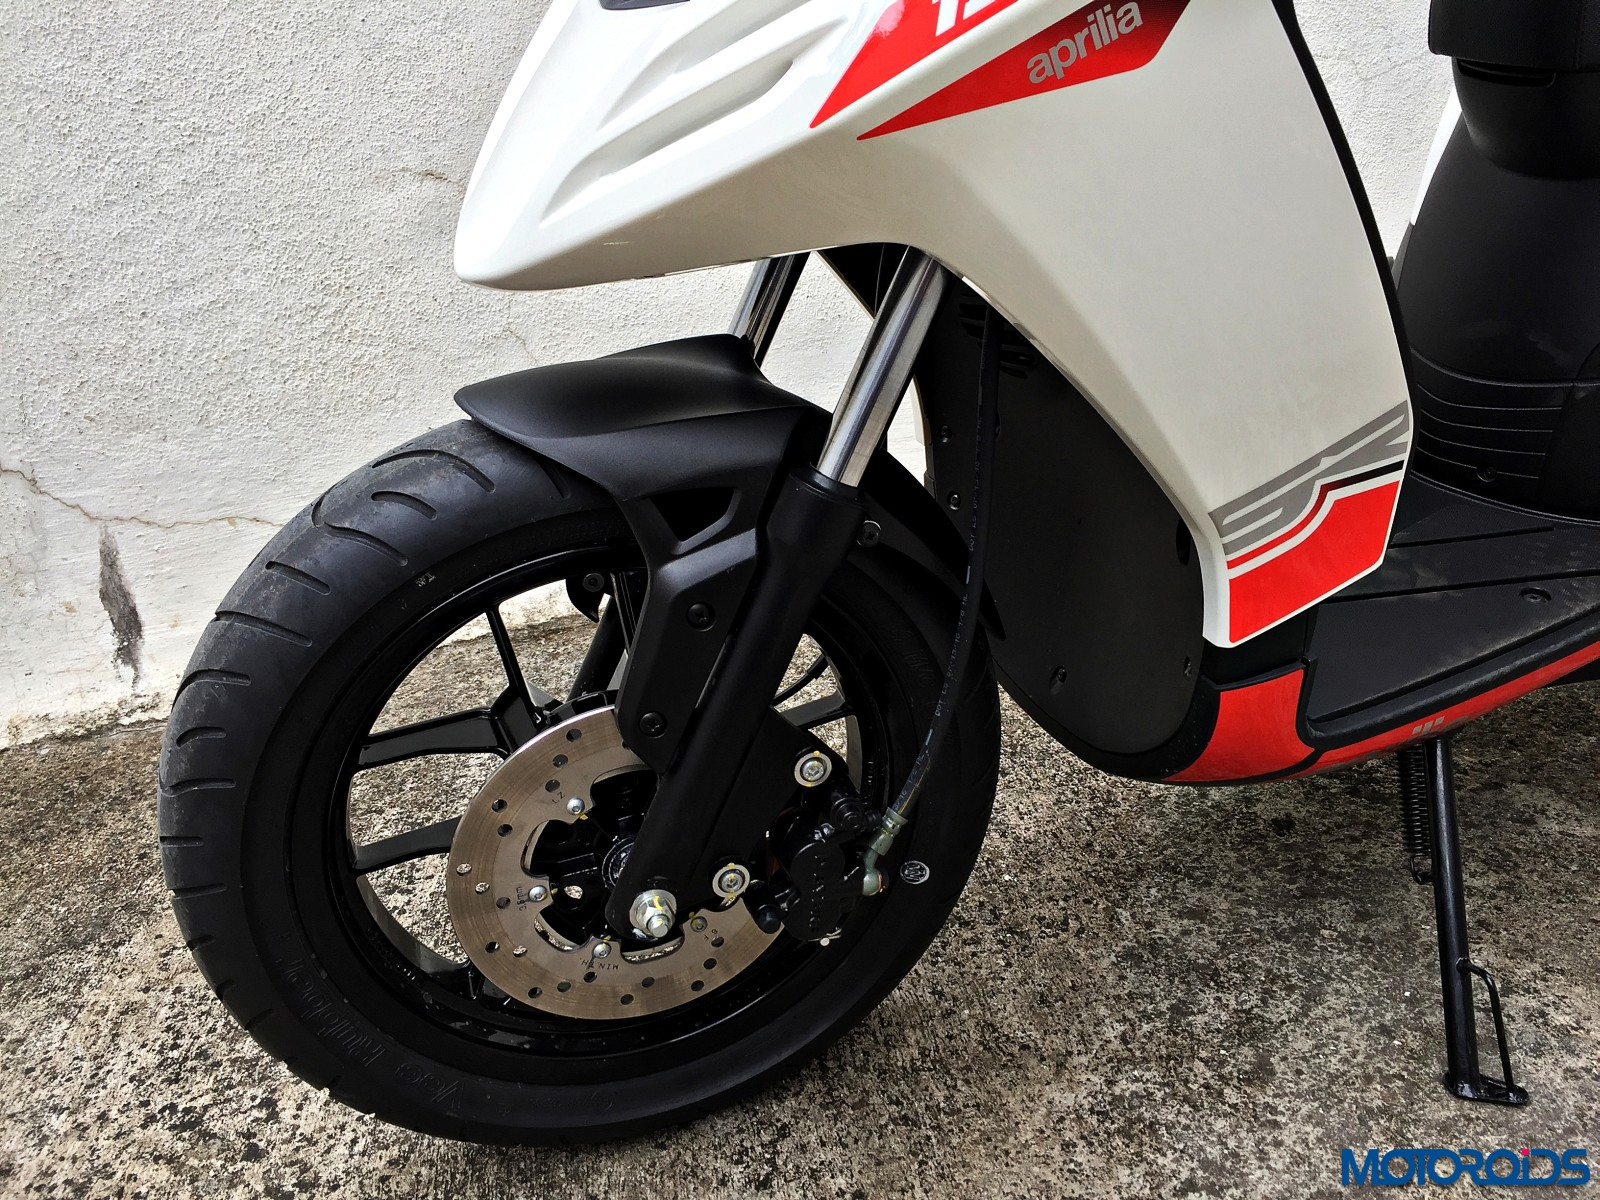 aprilia-sr150-review-new-7